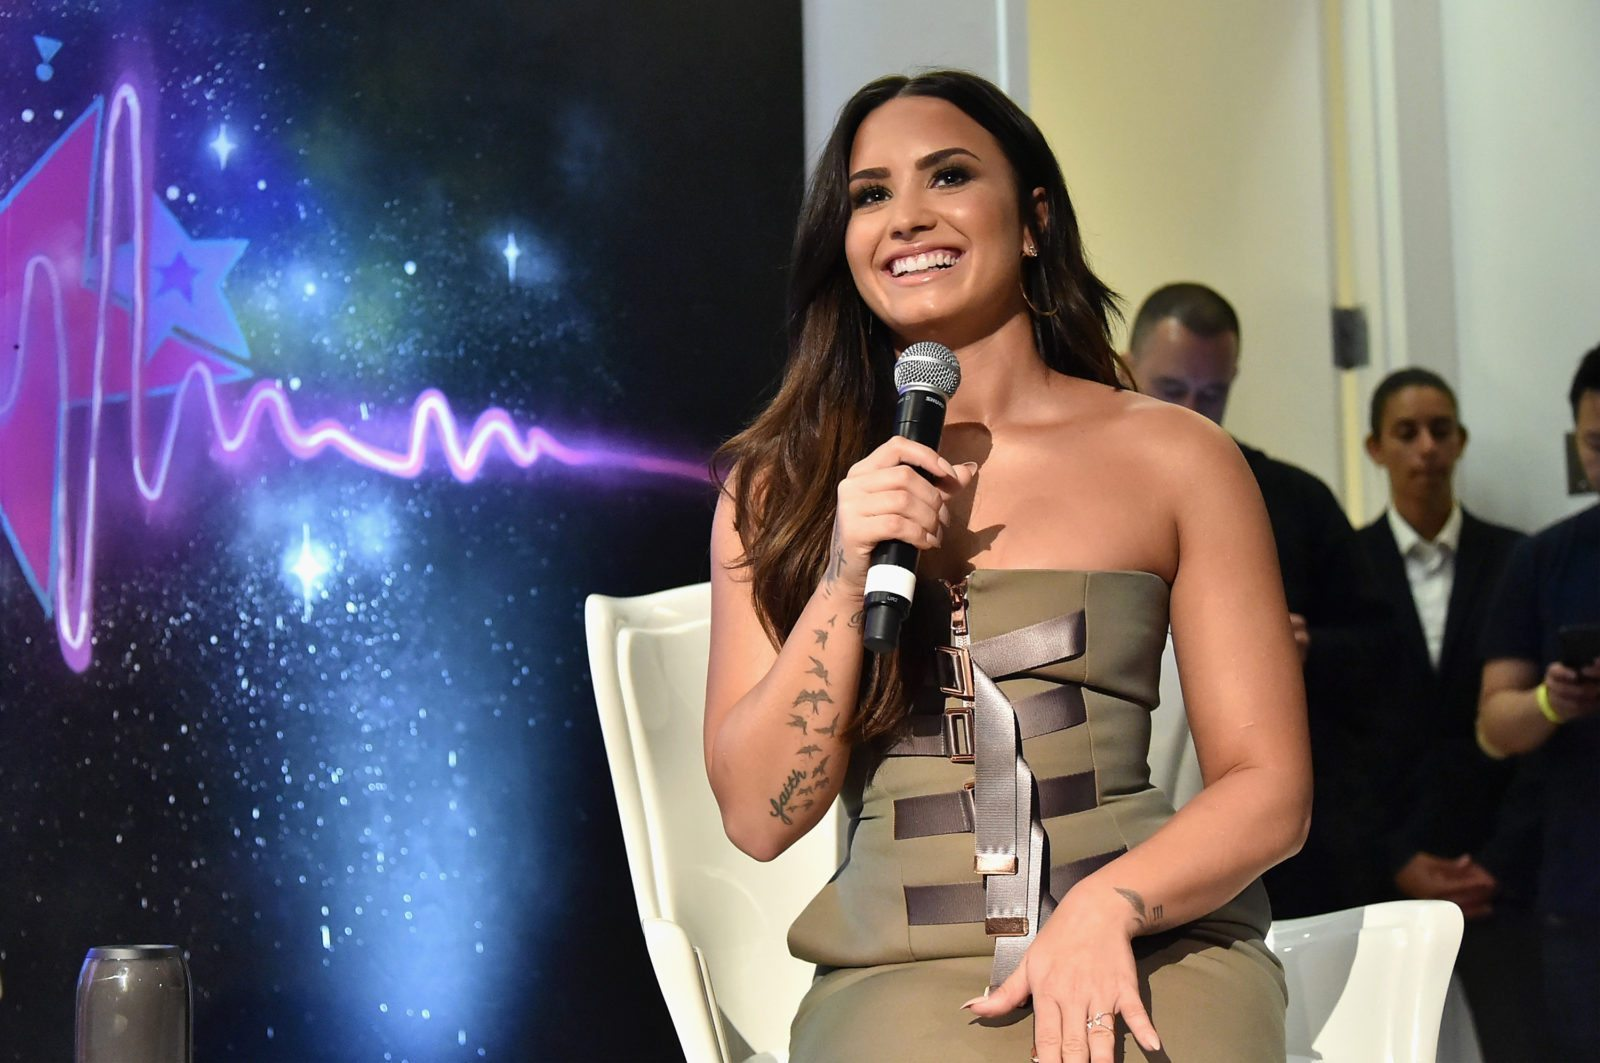 NEW YORK, NY - SEPTEMBER 28: Demi Lovato answered questions during the DEMI x JBL Tell Me You Love Me Pop Up event, celebrating her new album and partnership with JBL. The album listening party was held on September 28, 2017 at the Highline Gallery in New York City. (Photo by Mike Coppola/Getty Images for JBL)